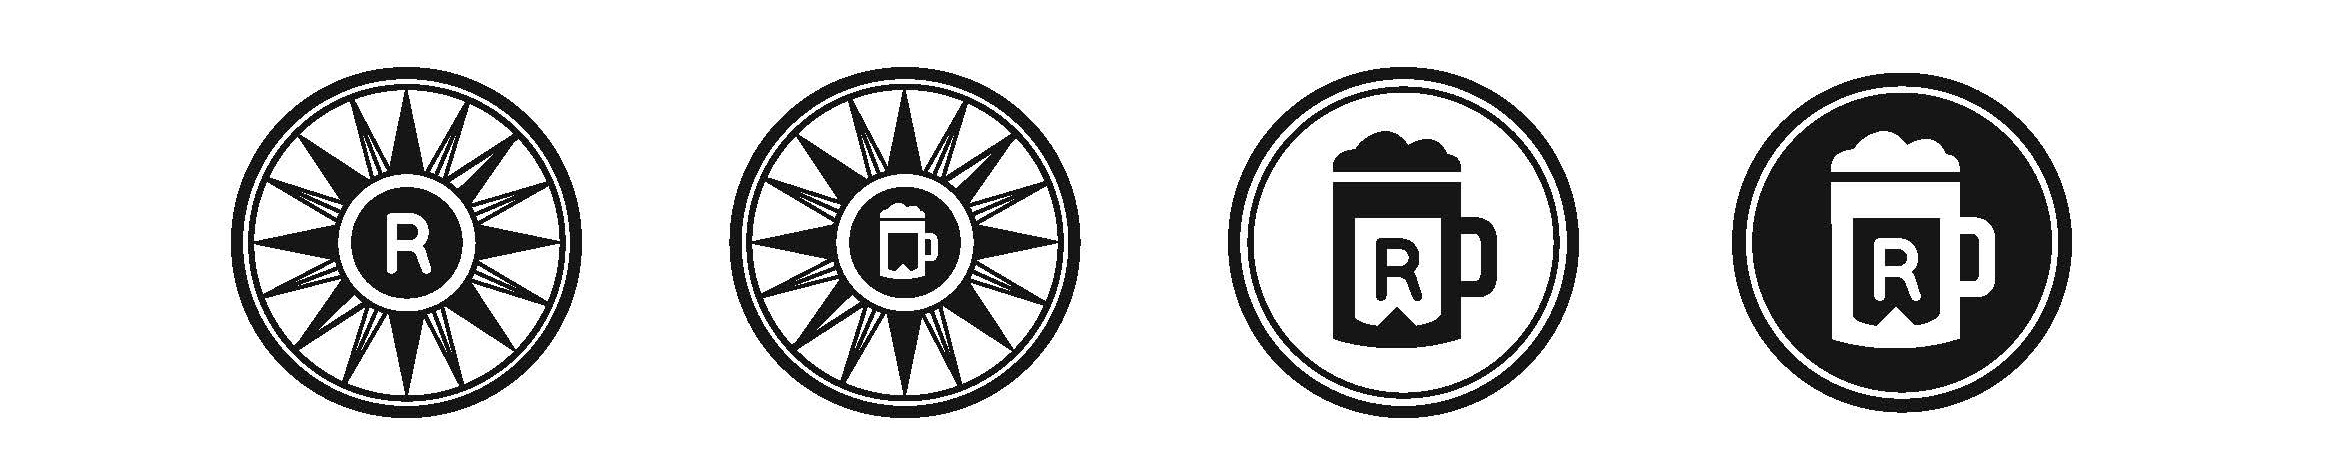 Brand system:black and white icons